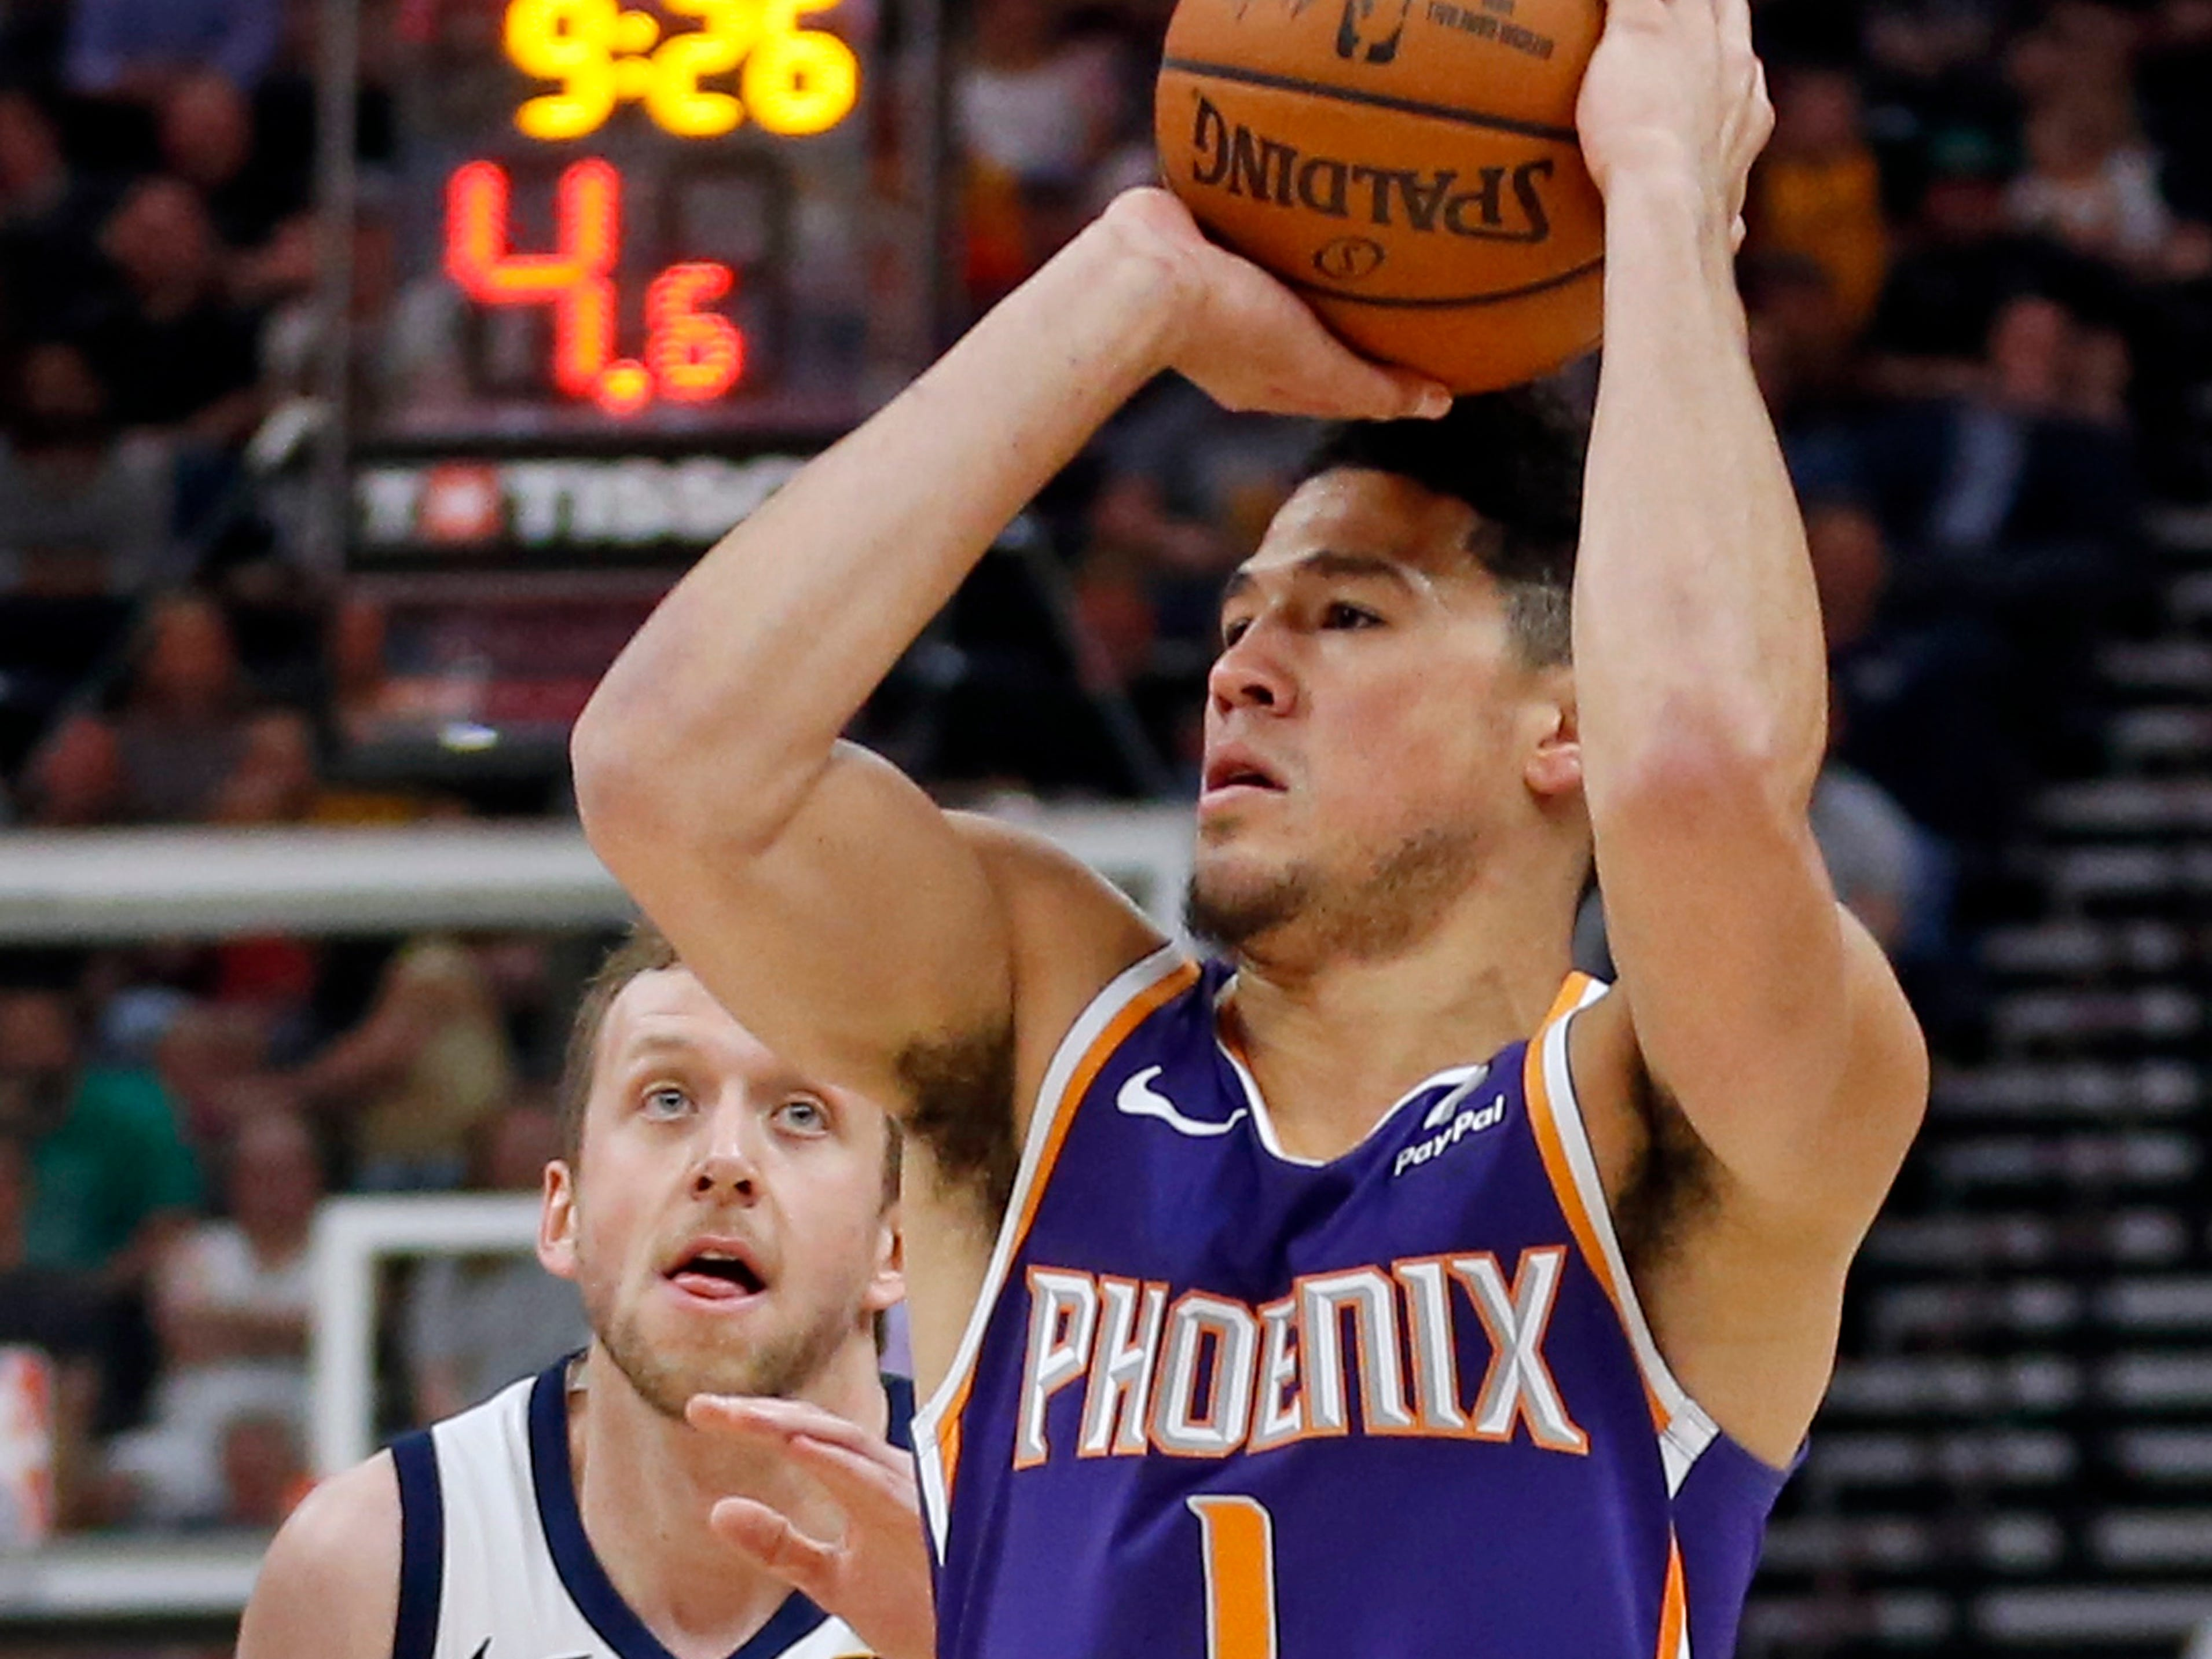 Phoenix Suns guard Devin Booker (1) prepares to shoot as Utah Jazz forward Joe Ingles (2) defends during the first half of an NBA basketball game Monday, March 25, 2019, in Salt Lake City.